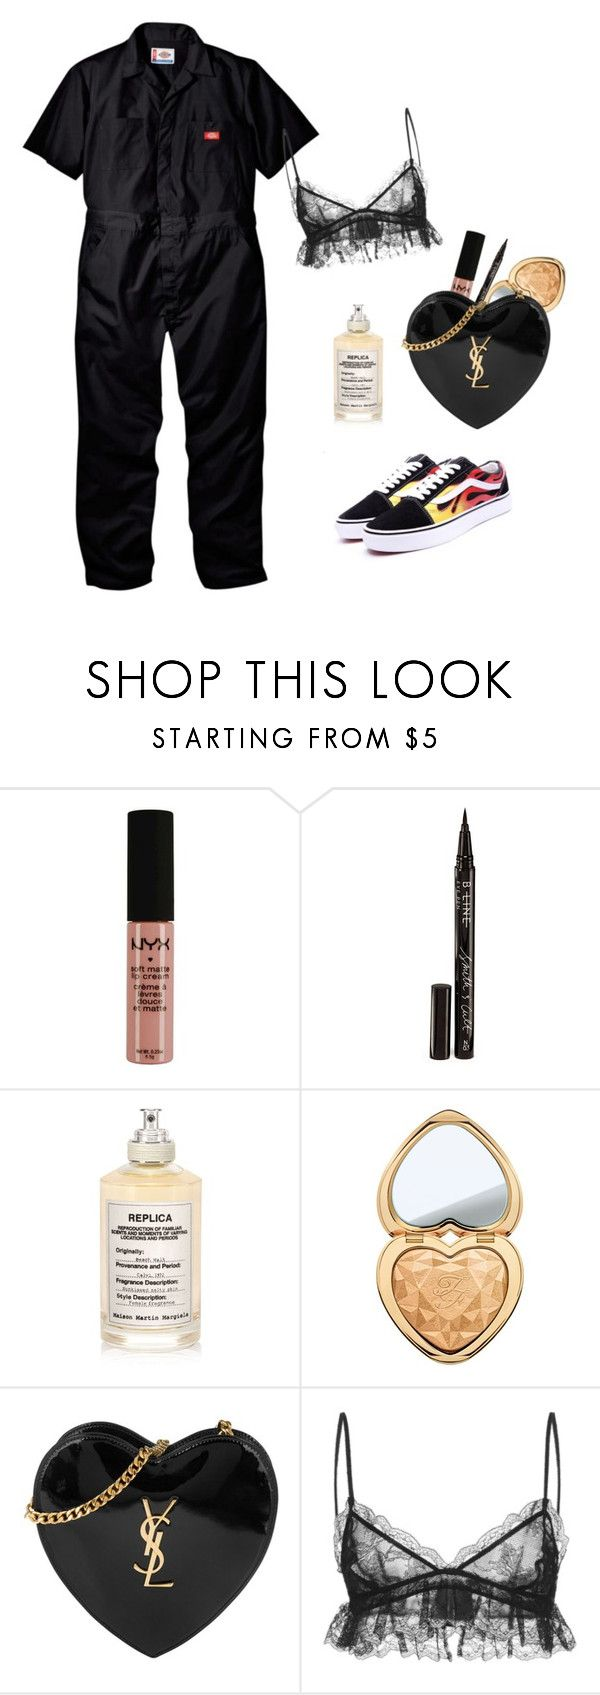 """""""Skepta : Banned from America Tour"""" by eyelinerxbaddecisions ❤ liked on Polyvore featuring NYX, Smith & Cult, Maison Margiela, Too Faced Cosmetics, Yves Saint Laurent and Giambattista Valli"""